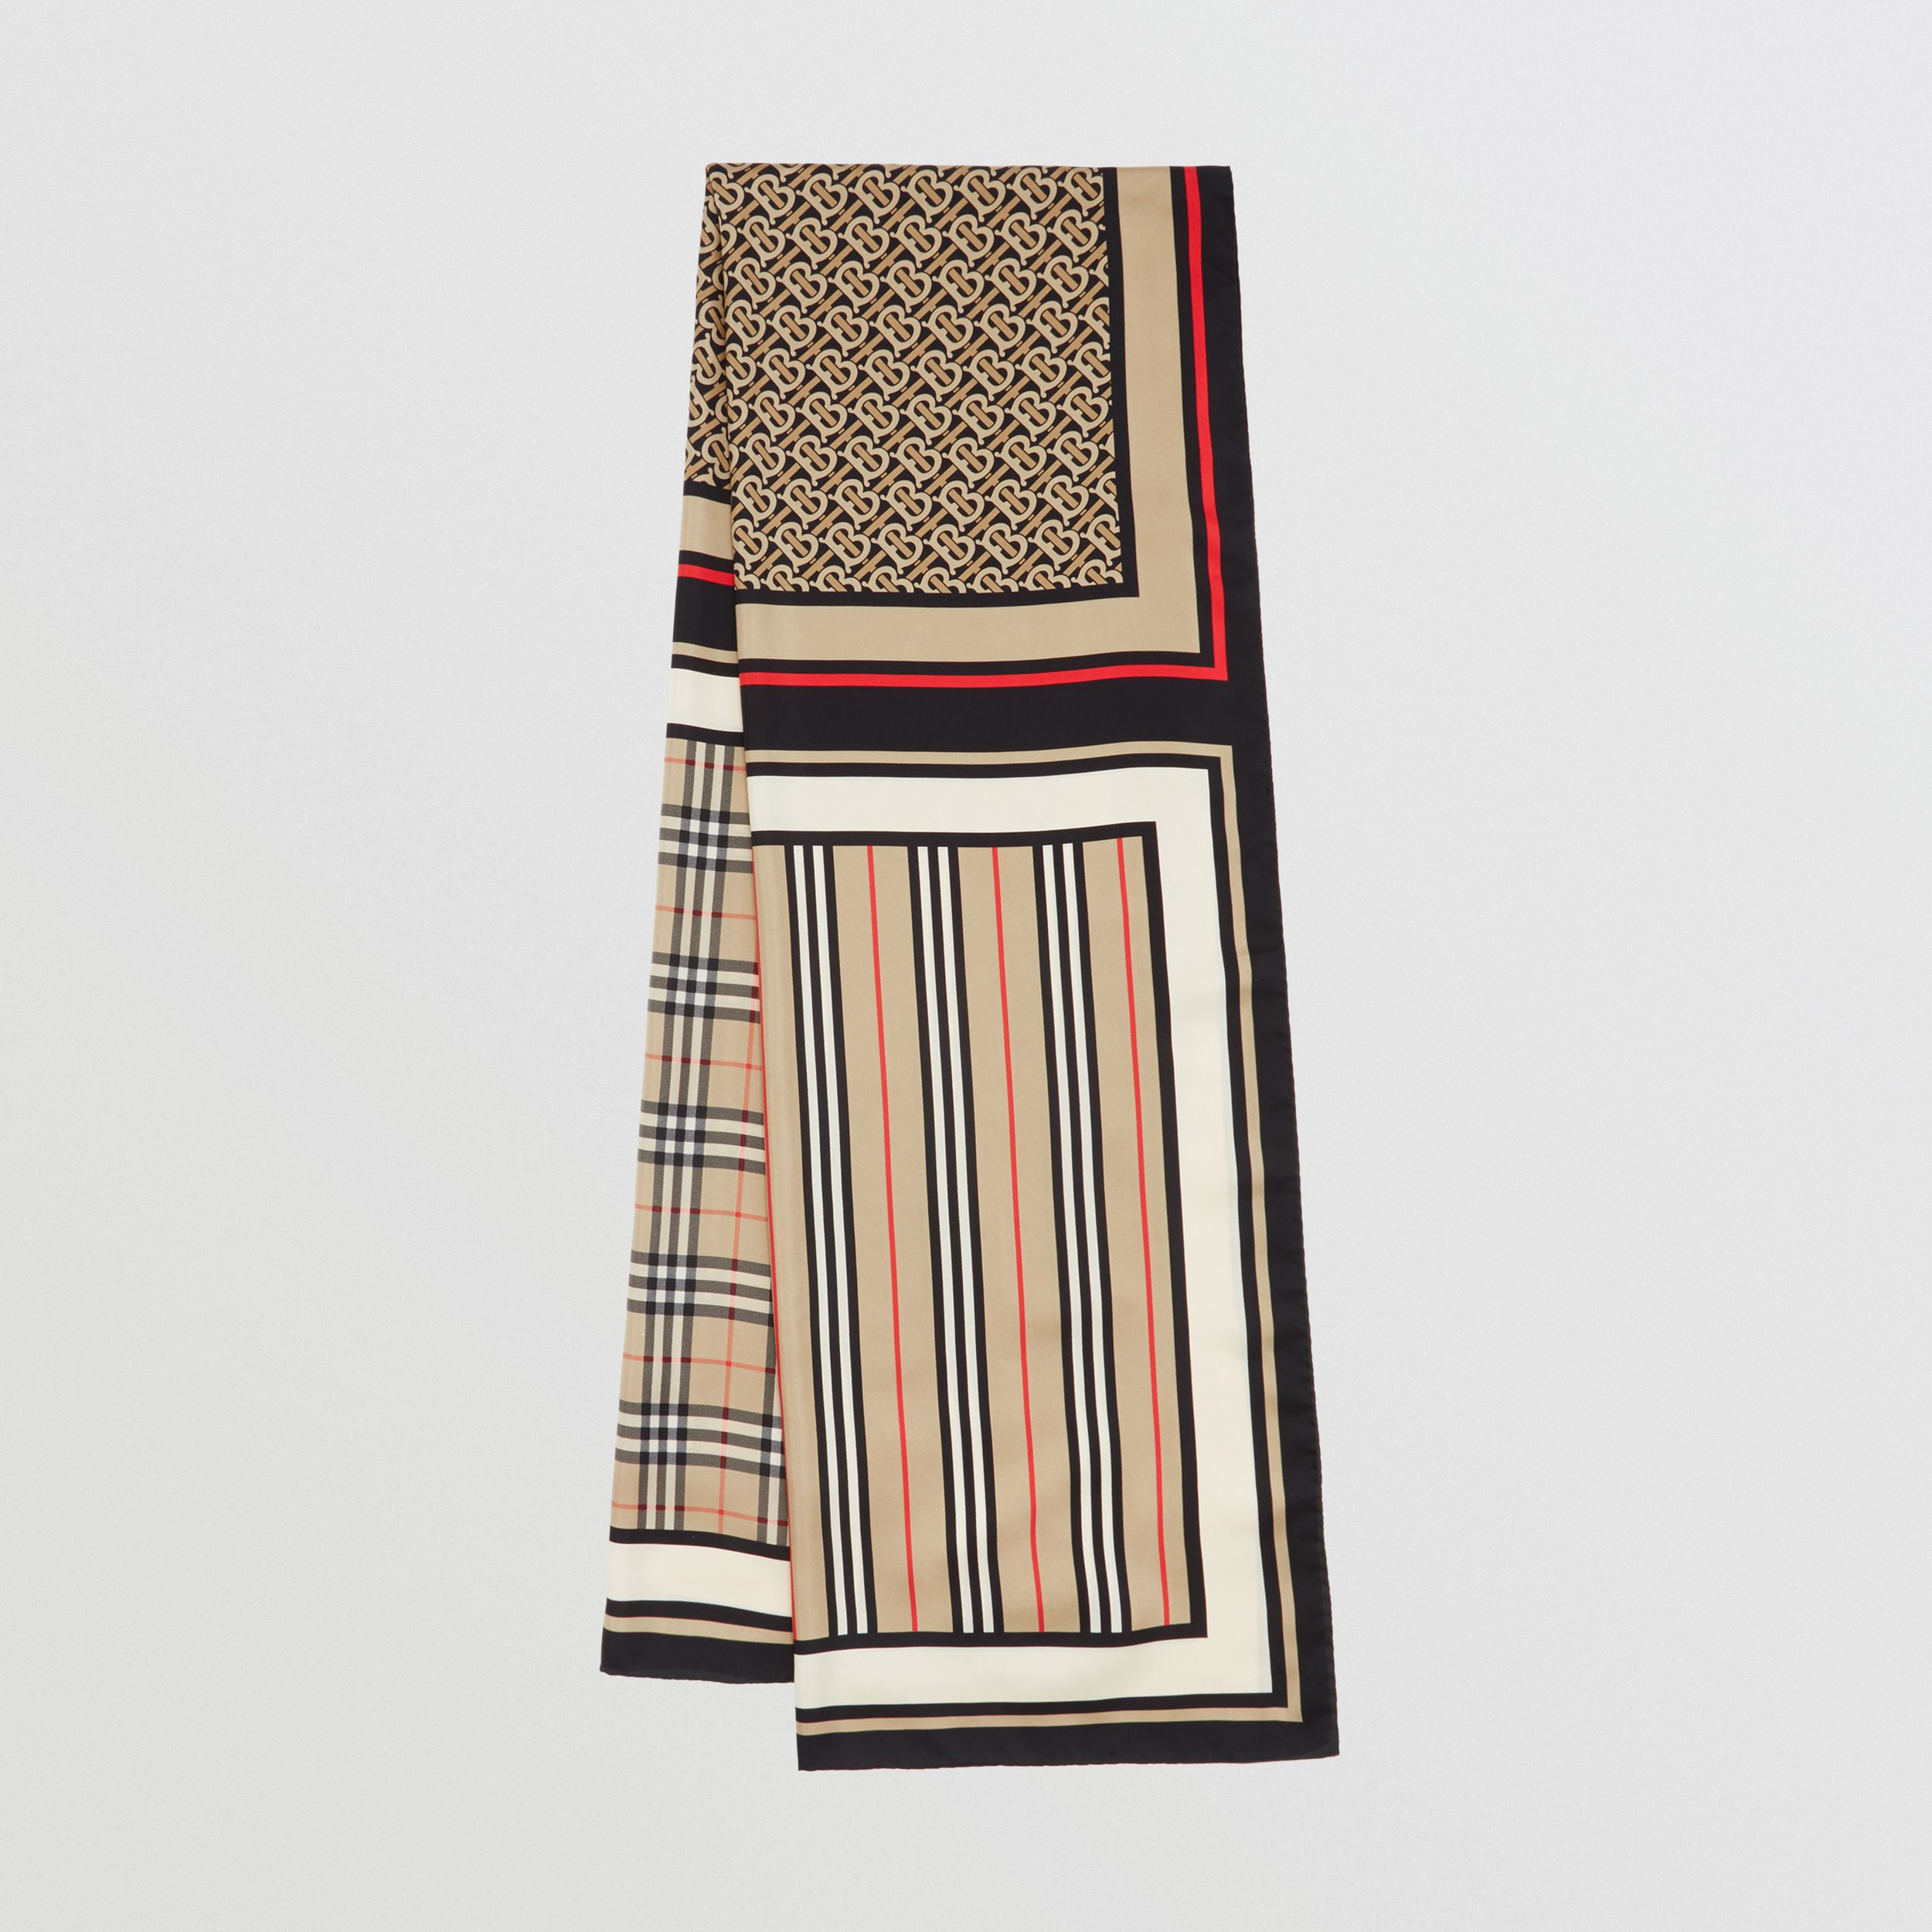 Monogram, Icon Stripe and Check Print Silk Scarf in Archive Beige | Burberry - 1